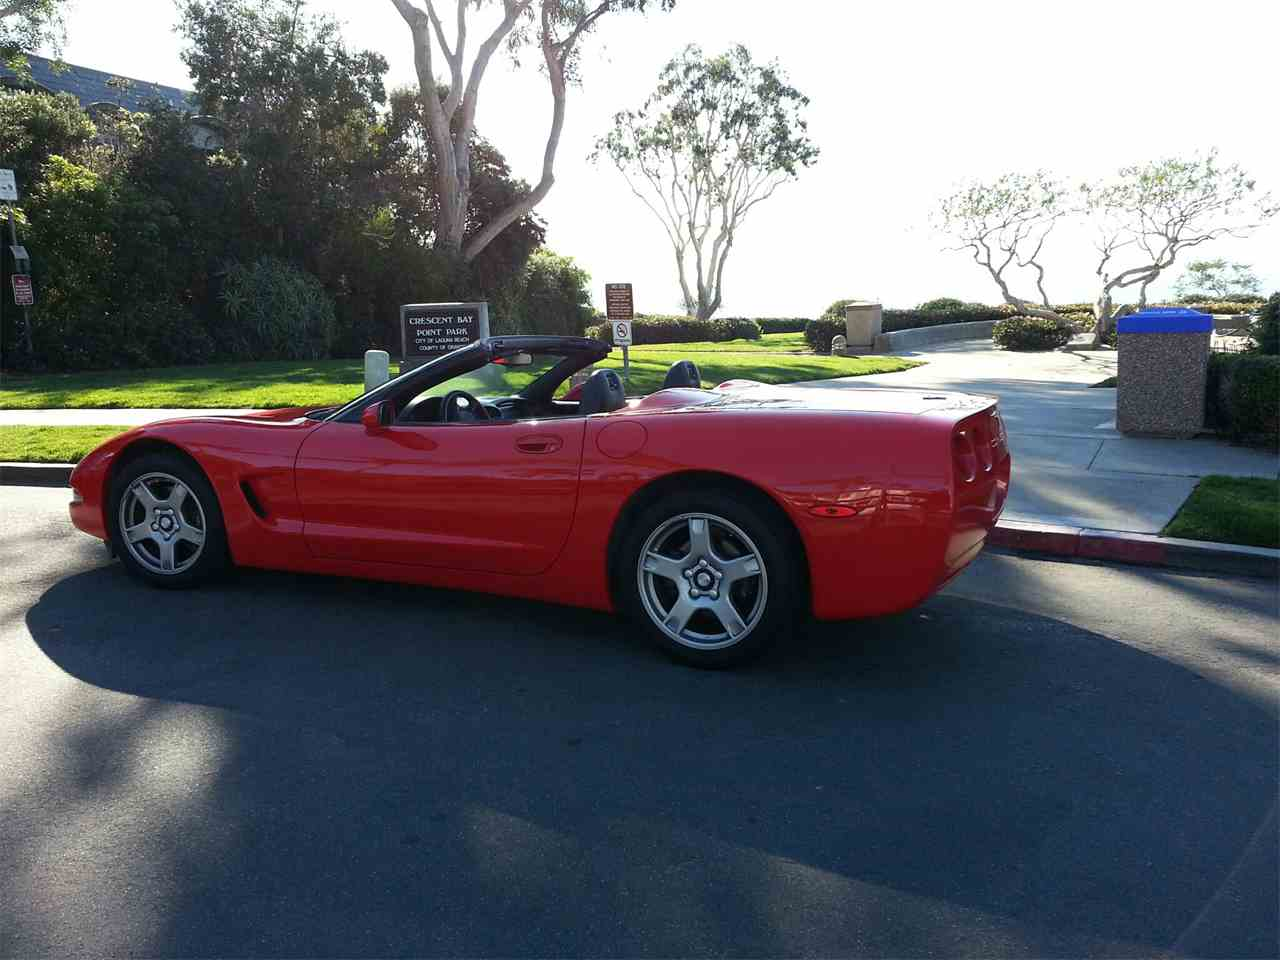 Used Corvettes For Sale Under 5000 Upcomingcarshq Com